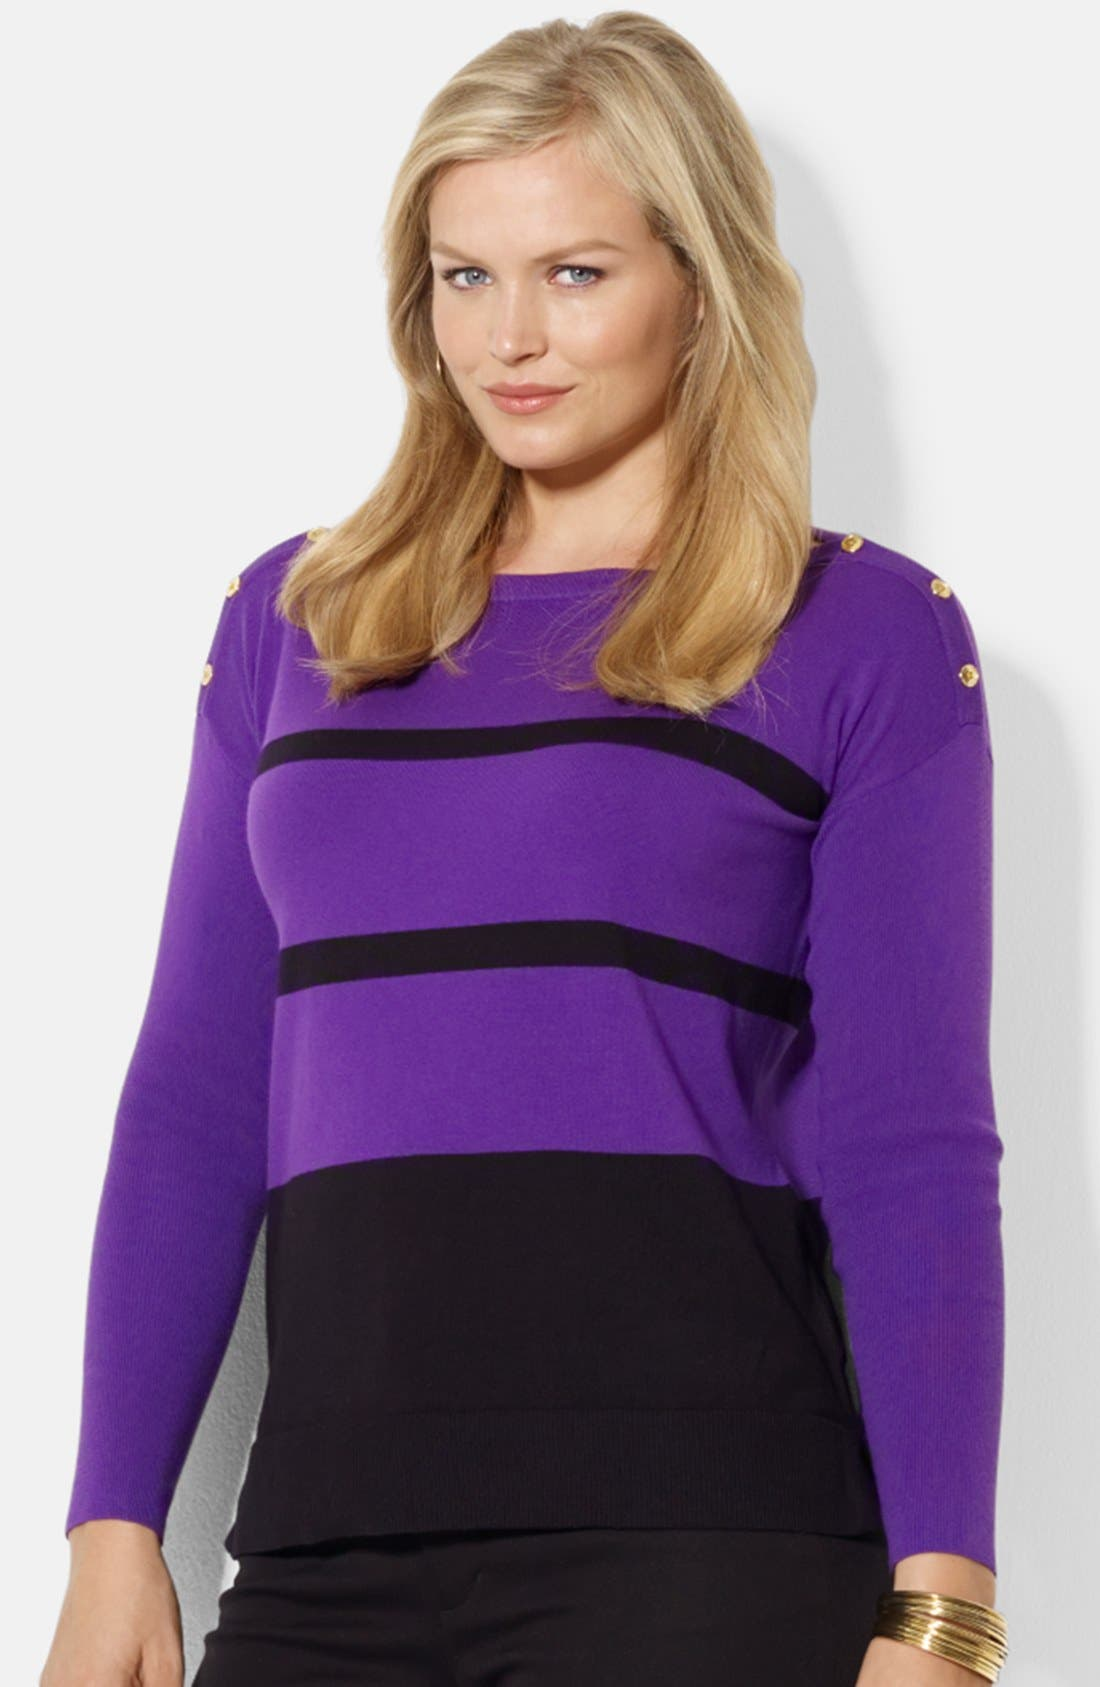 Main Image - Lauren Ralph Lauren Cotton Blend Sweater (Plus Size)